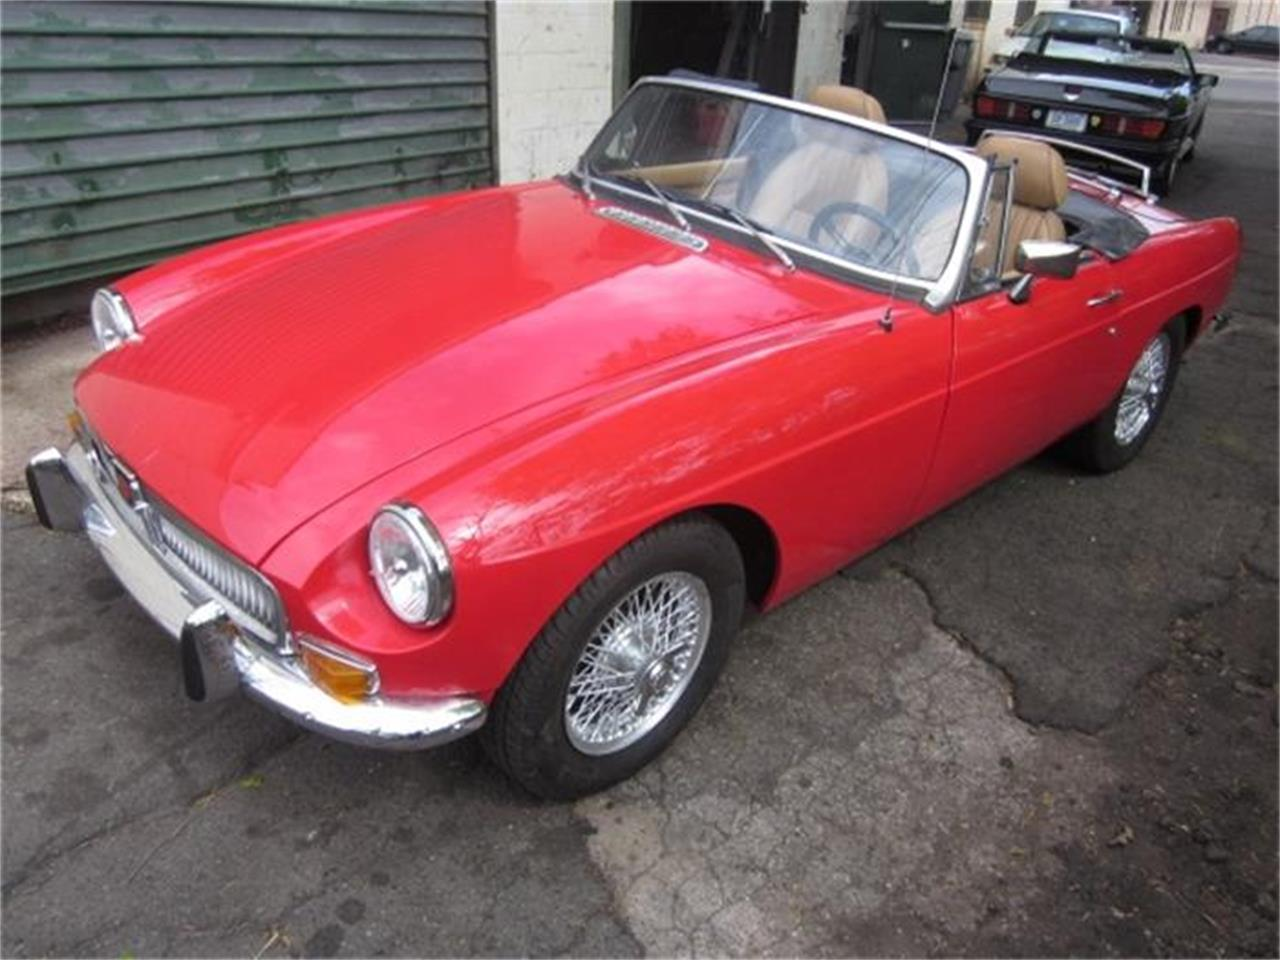 Large Picture of '79 MG MGB located in Stratford Connecticut - $19,900.00 - I53J